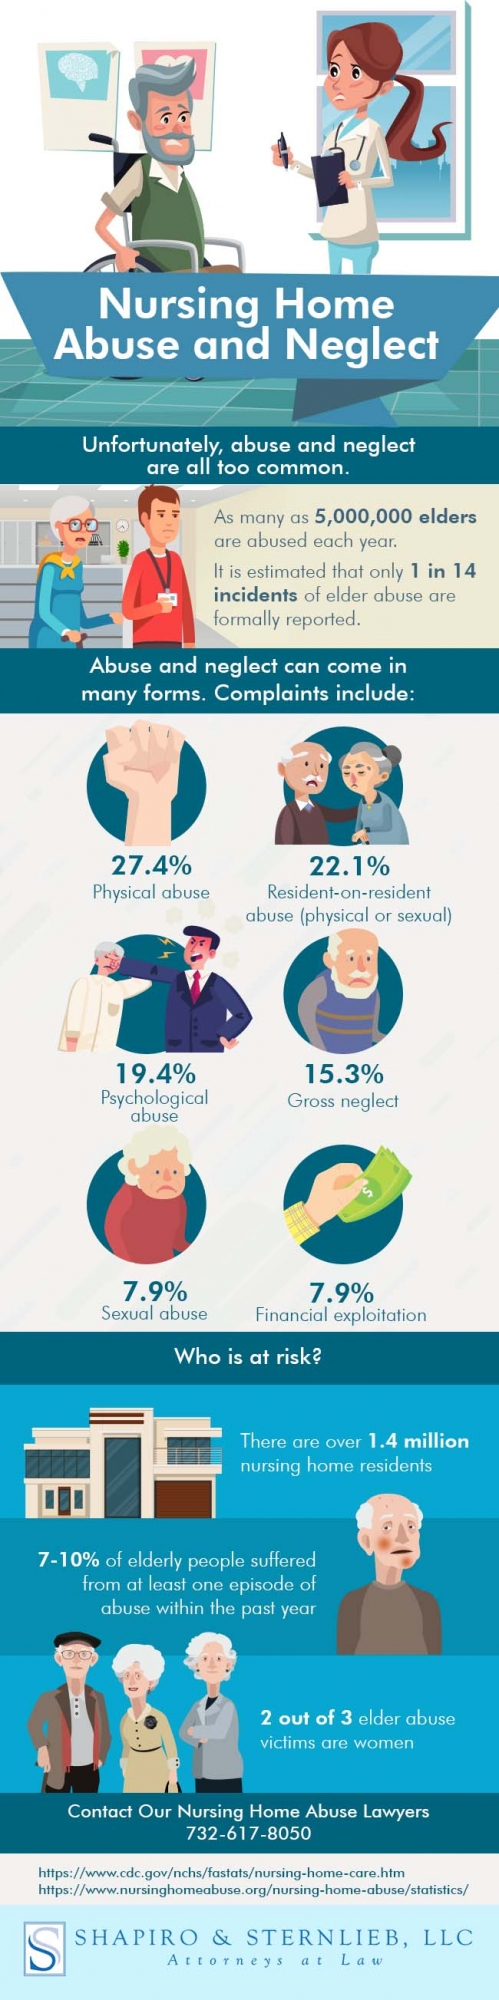 Nursing home abuse infographic